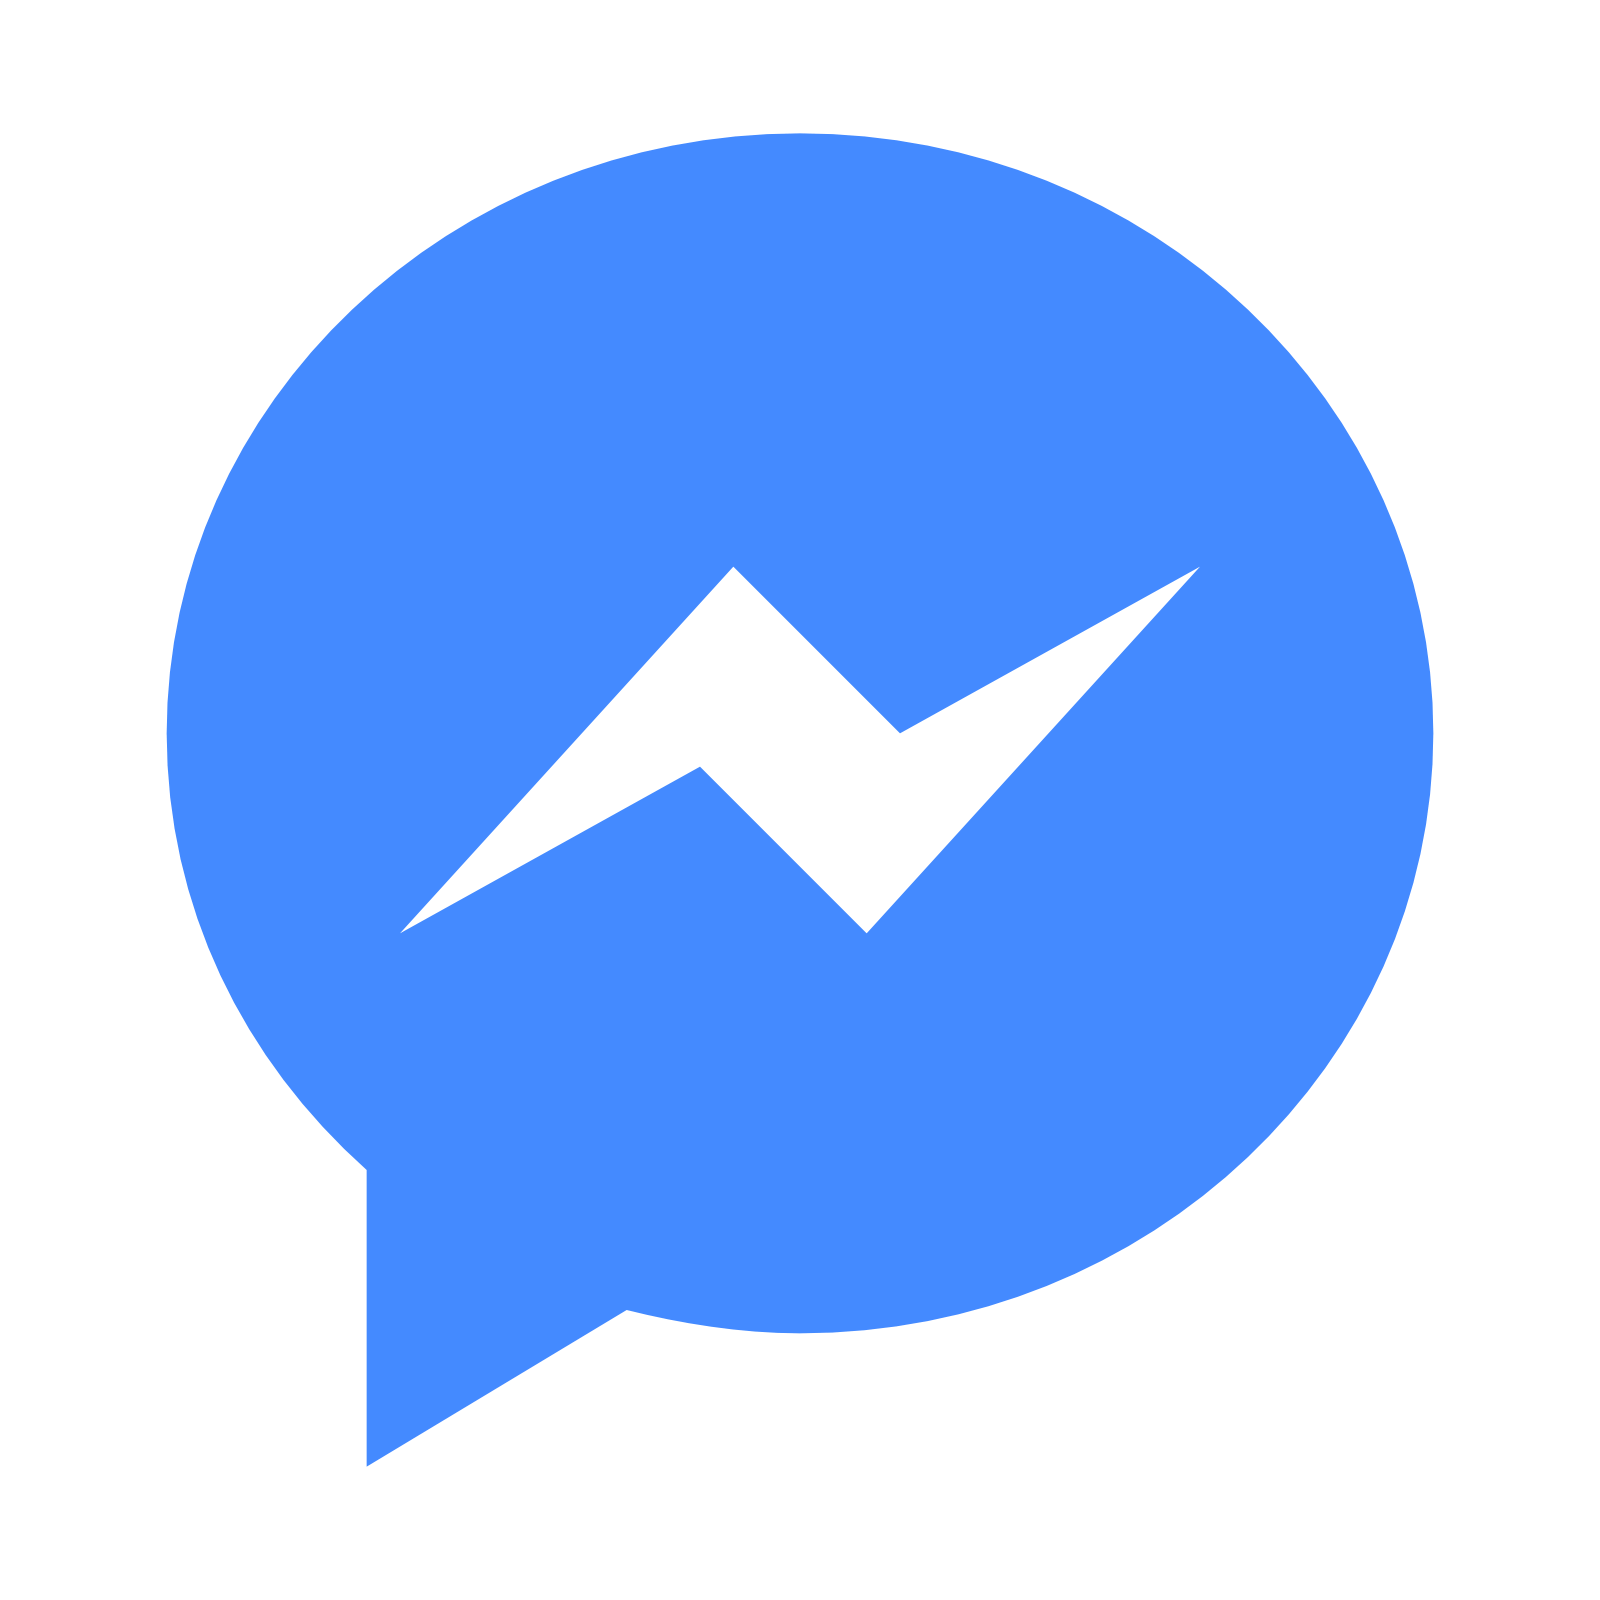 Facebook Messenger Marketing Agency Charlotte, NC | Aycock Marketing